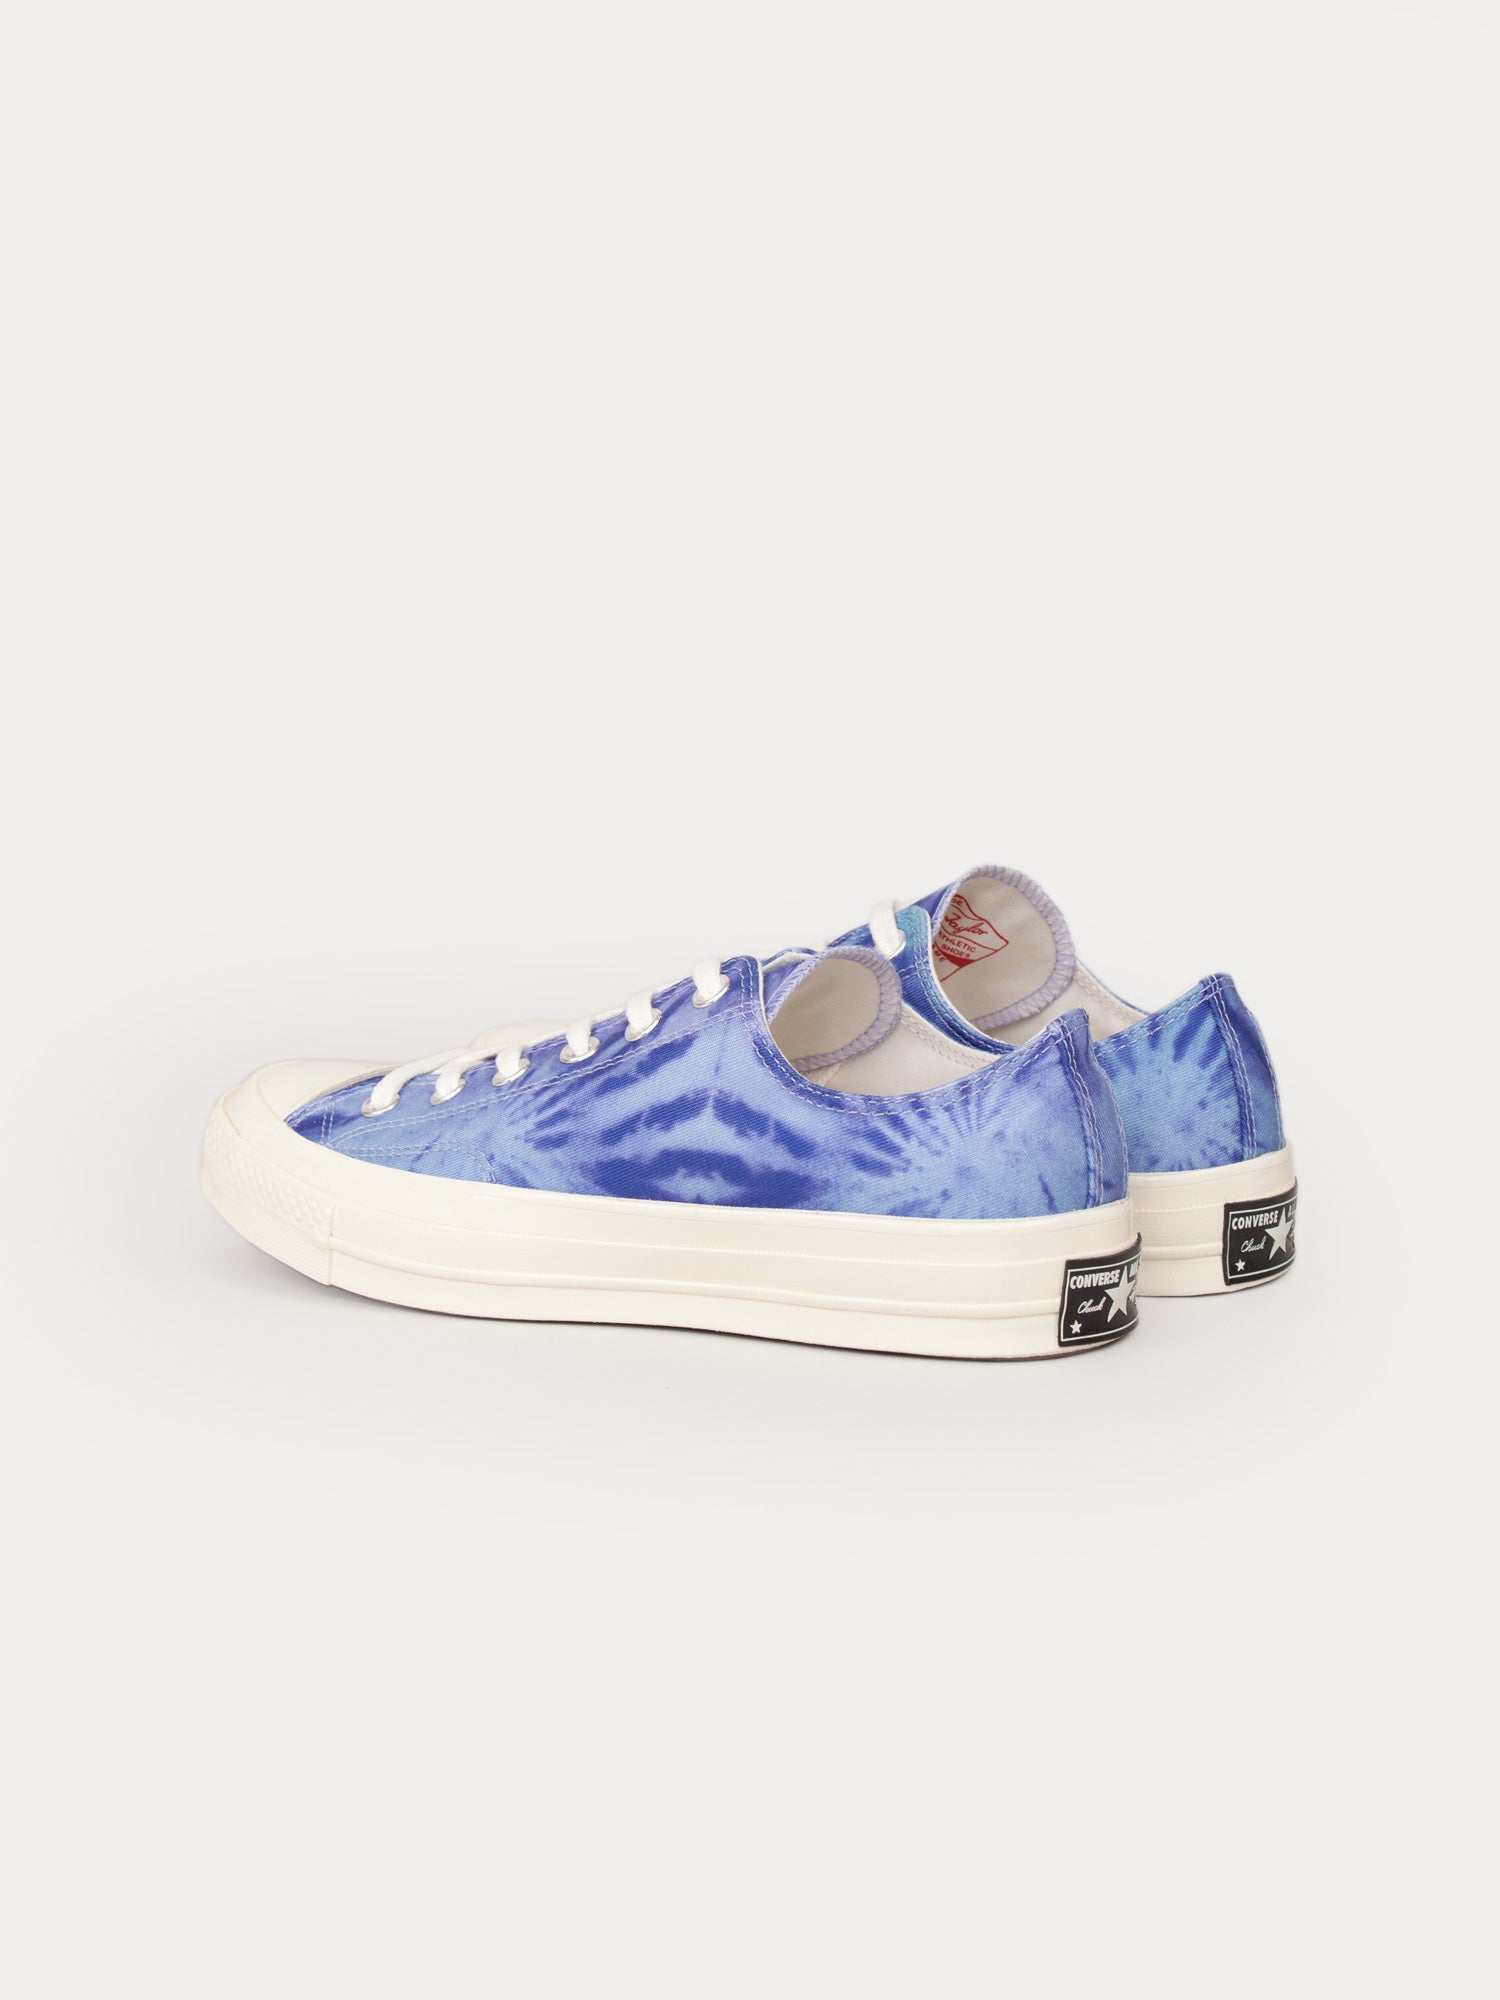 11cee6174901 Converse Chuck Taylor All Star 70 Ox (Court Purple   Shoreline Blue)